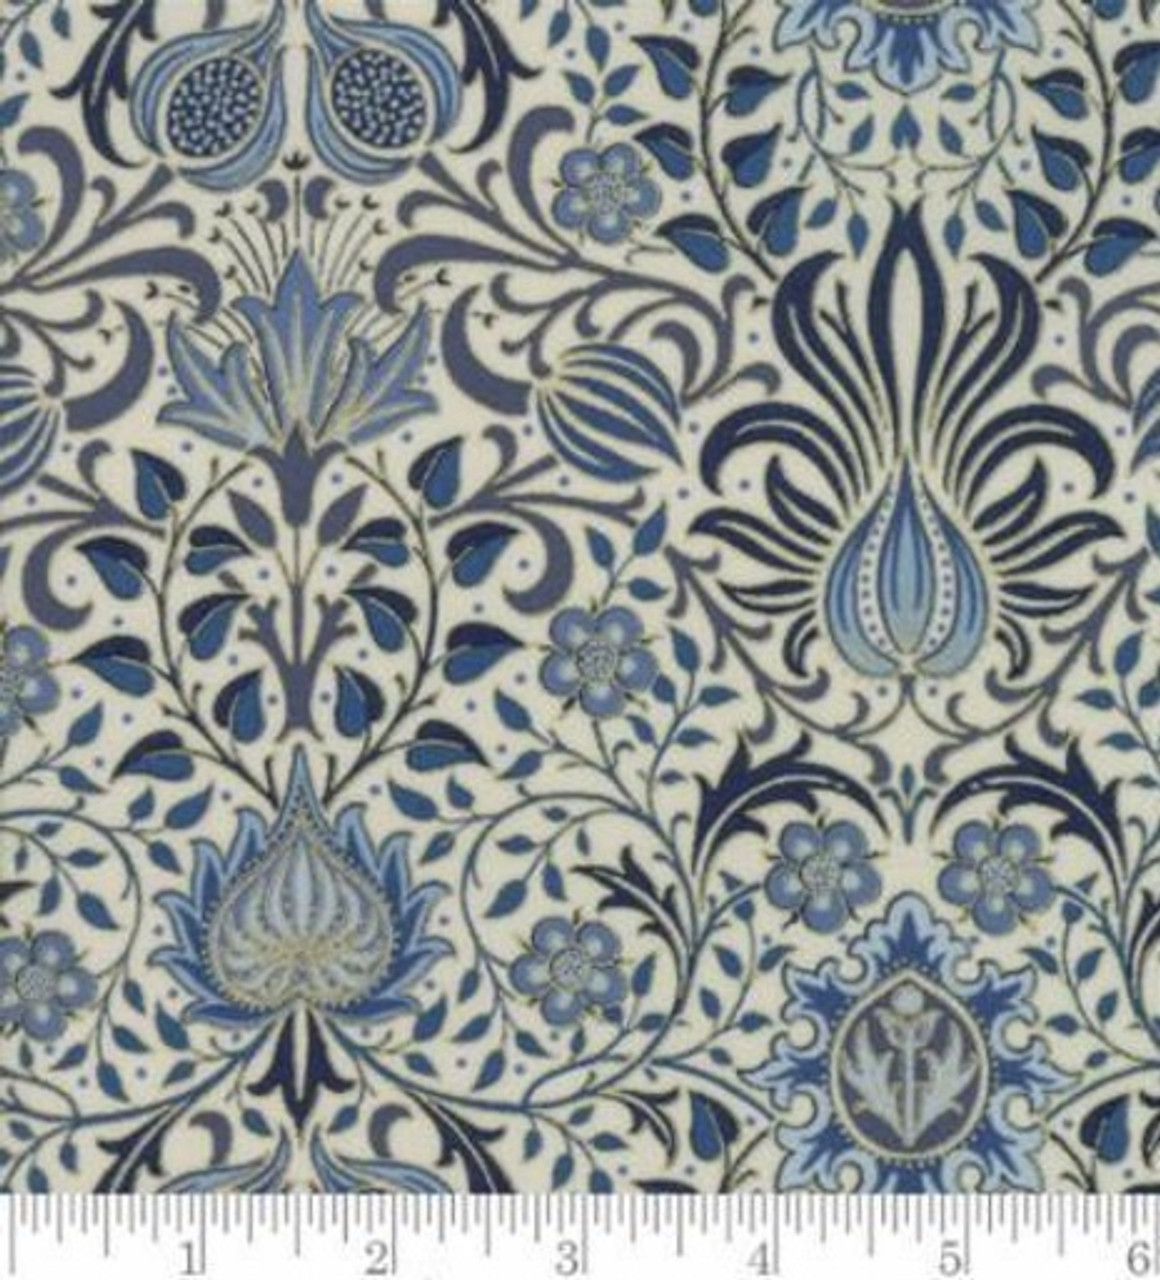 Abstract Blues And Metallic Floral Pattern On White Fabric 7311